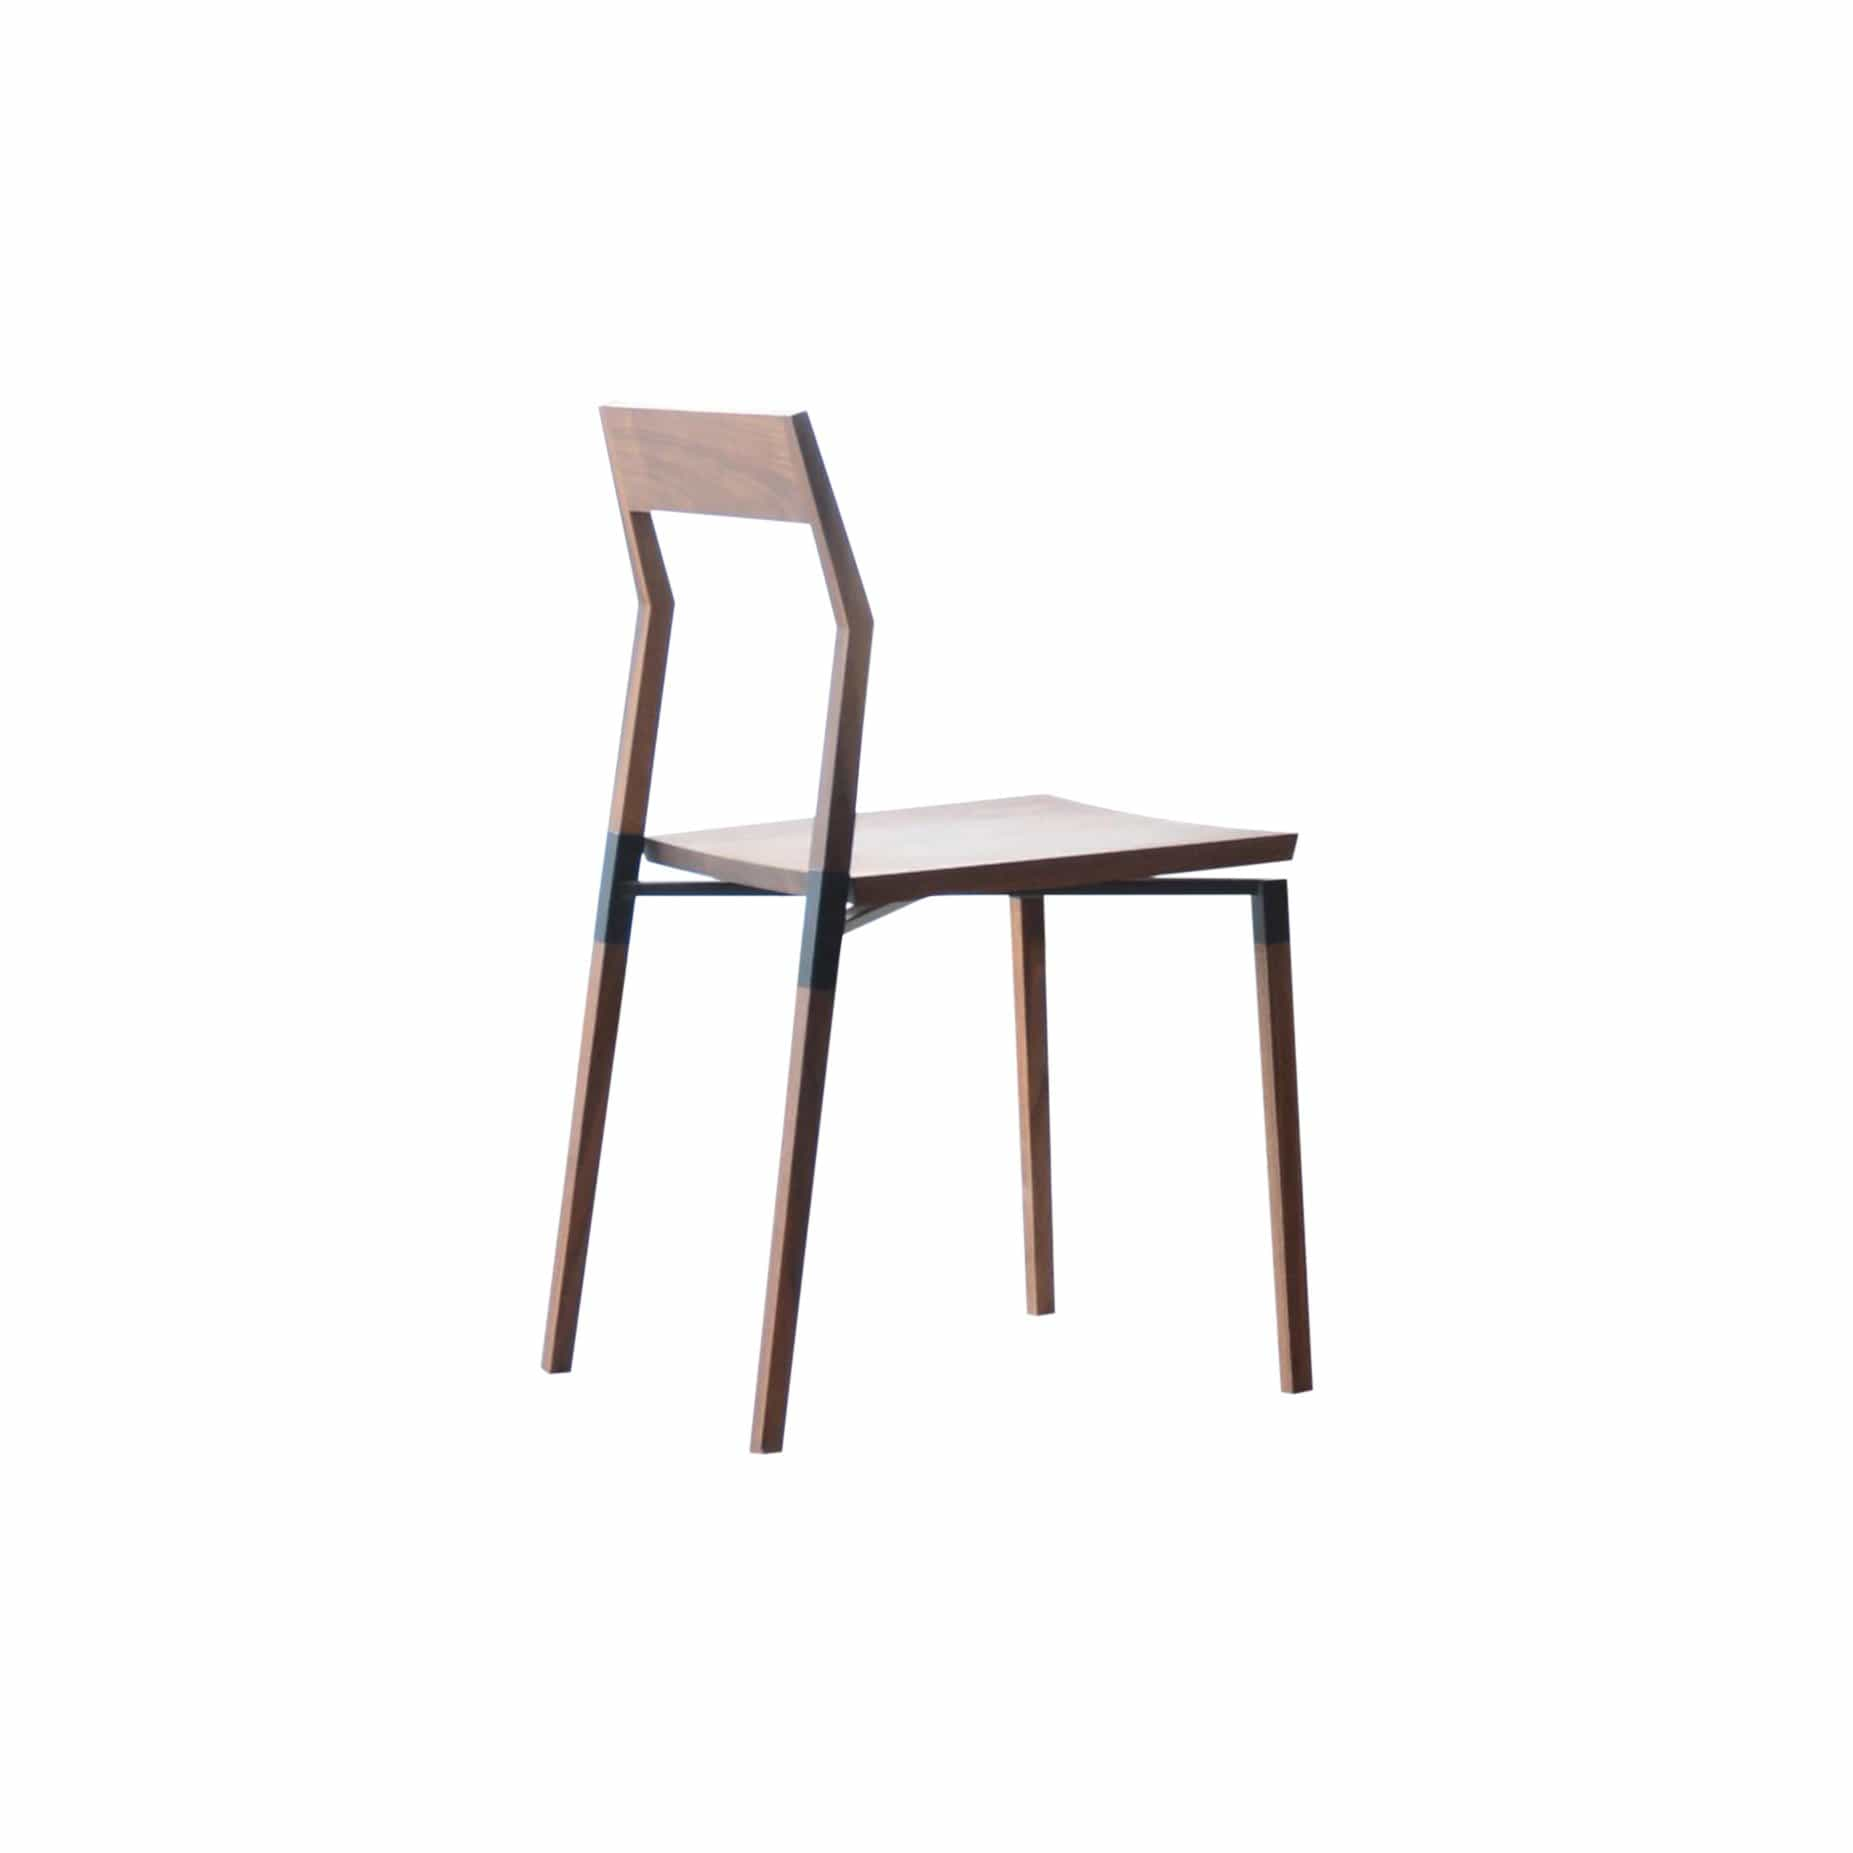 The Parkdale Dining Chair